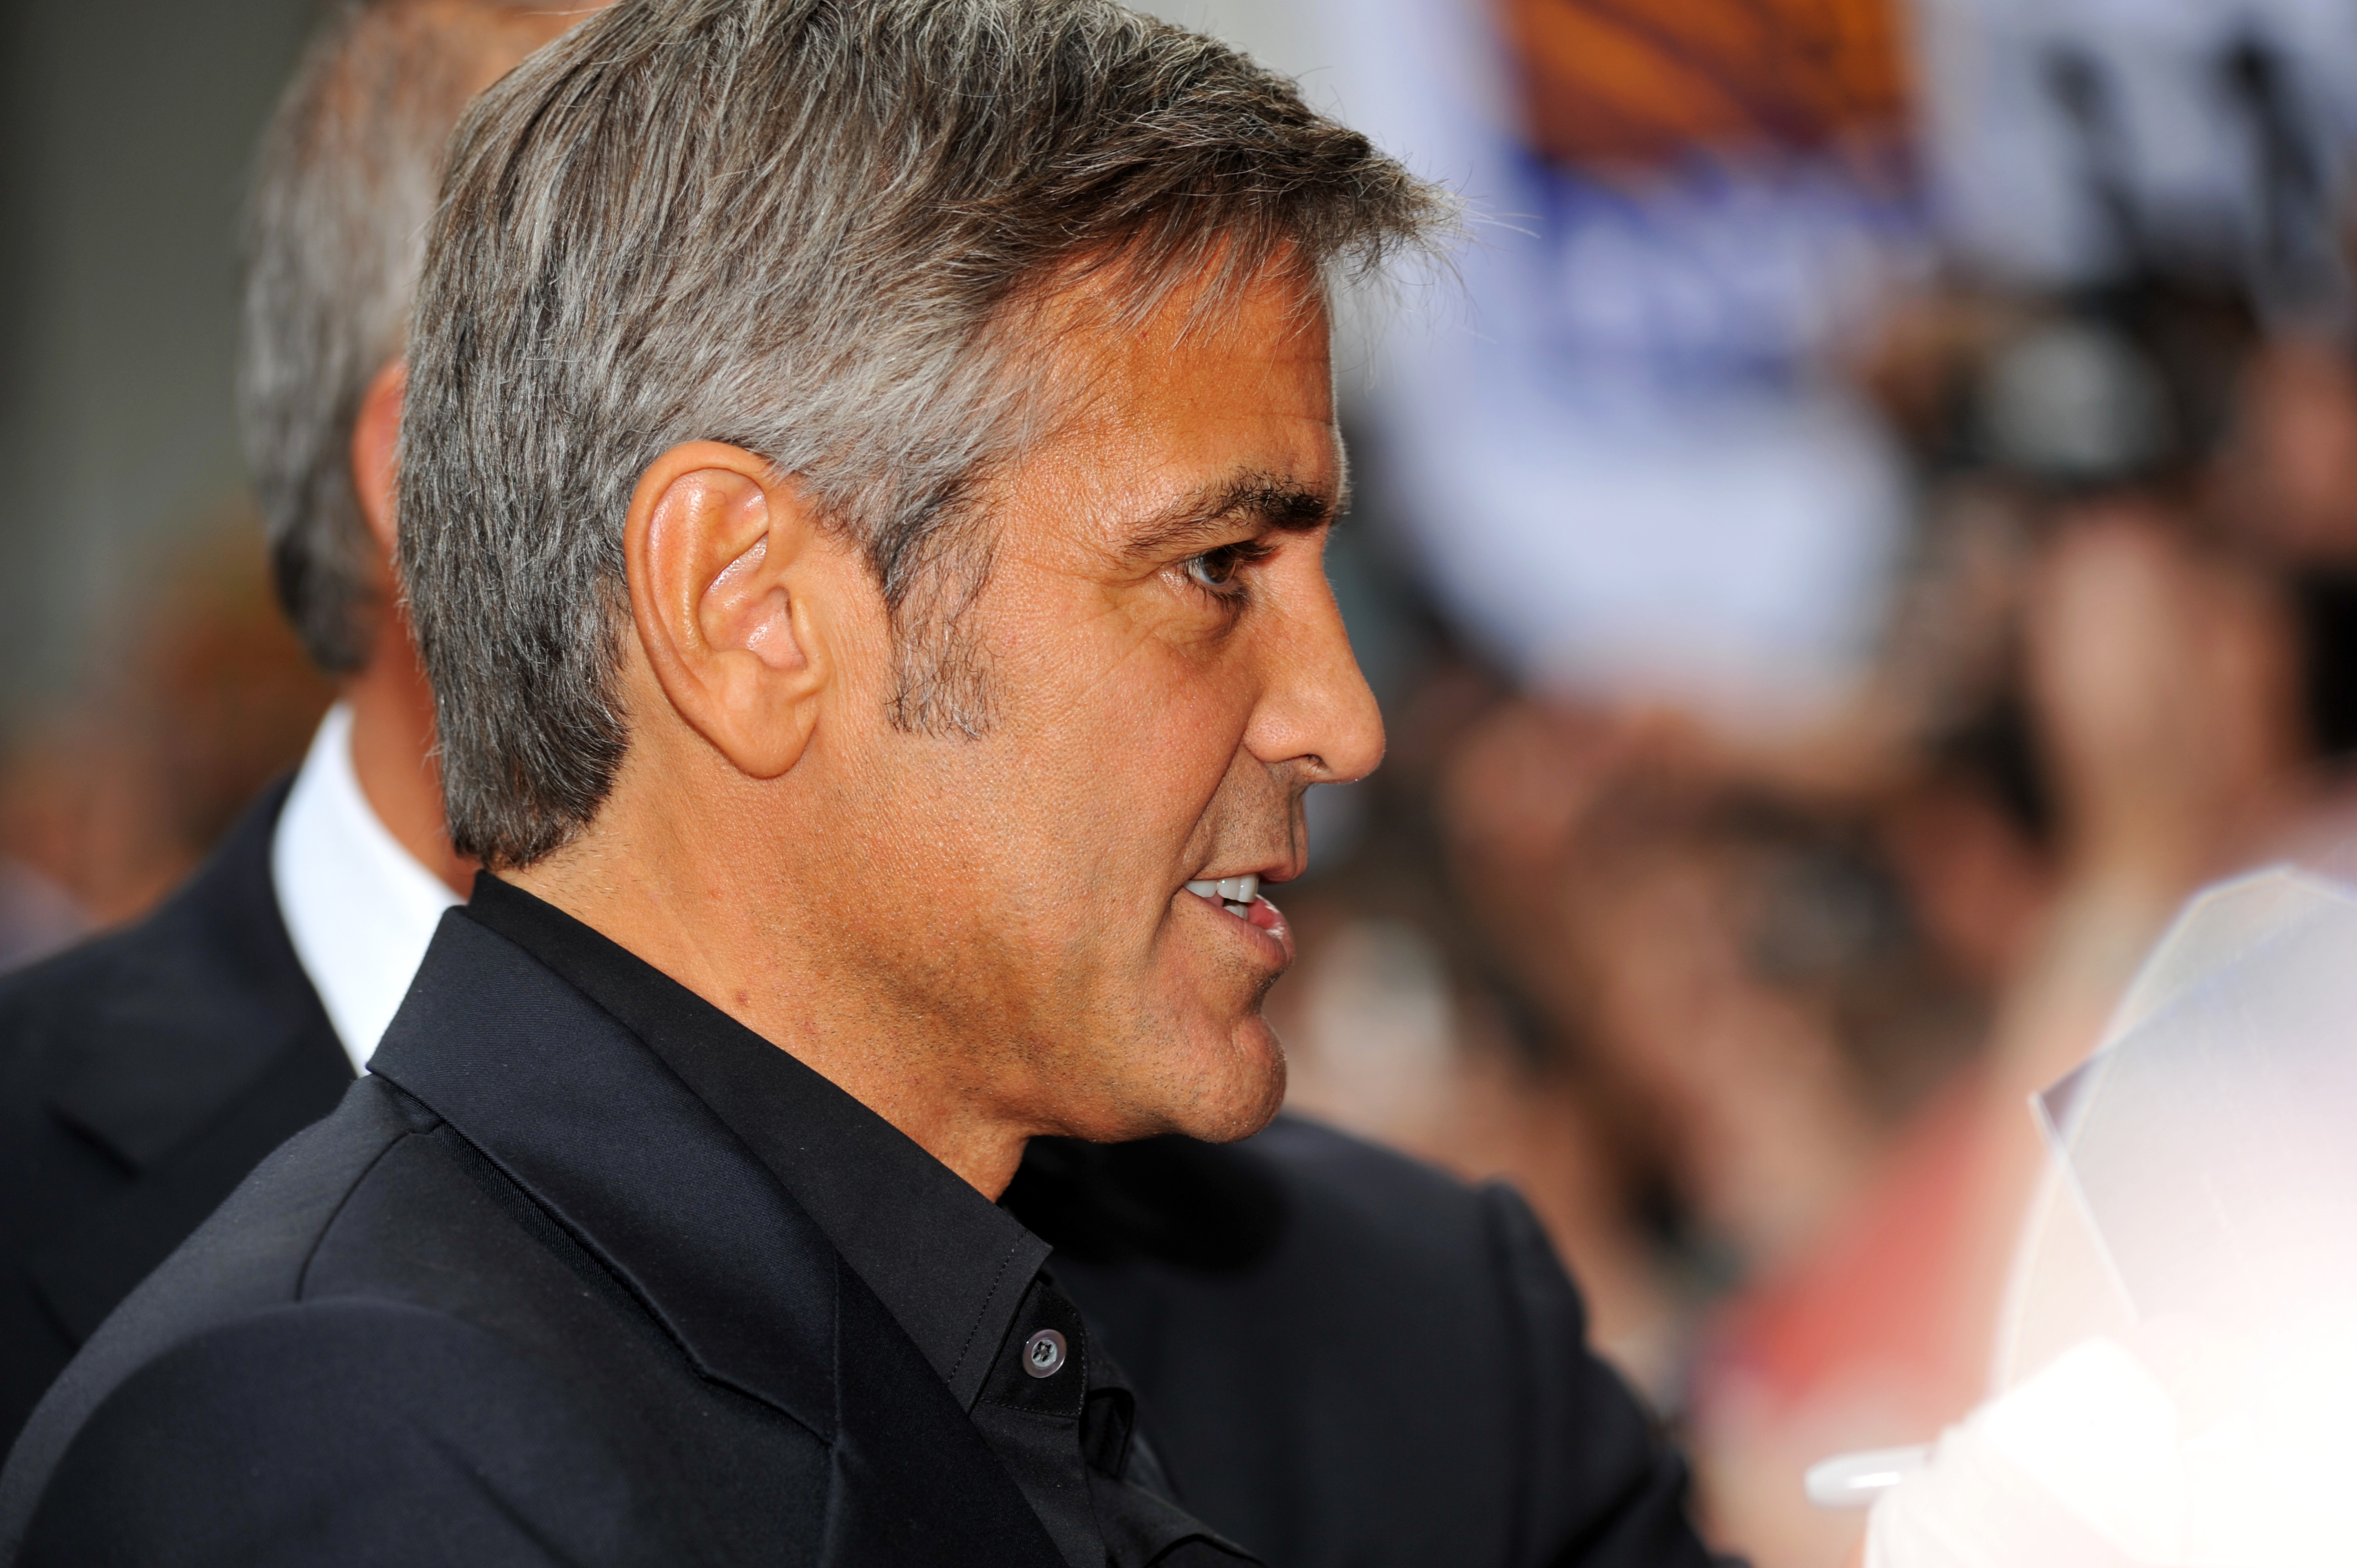 George Clooney Download Free Backgrounds Hd